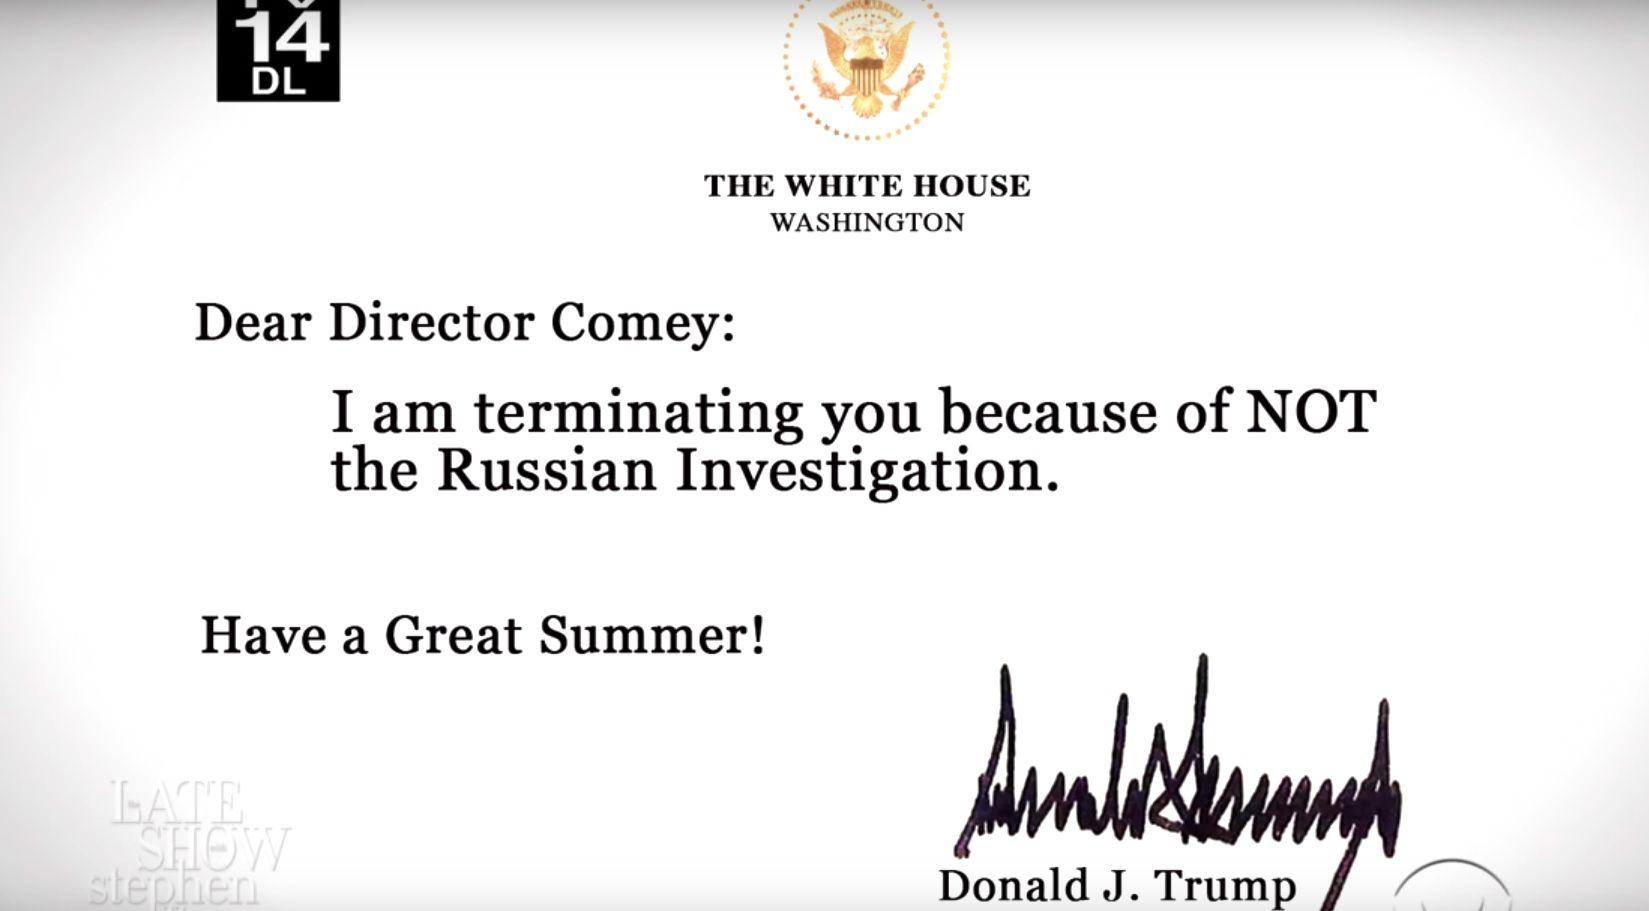 stephen colbert presents  u0026 39 trump u0026 39 s letters u0026 39  firing comey